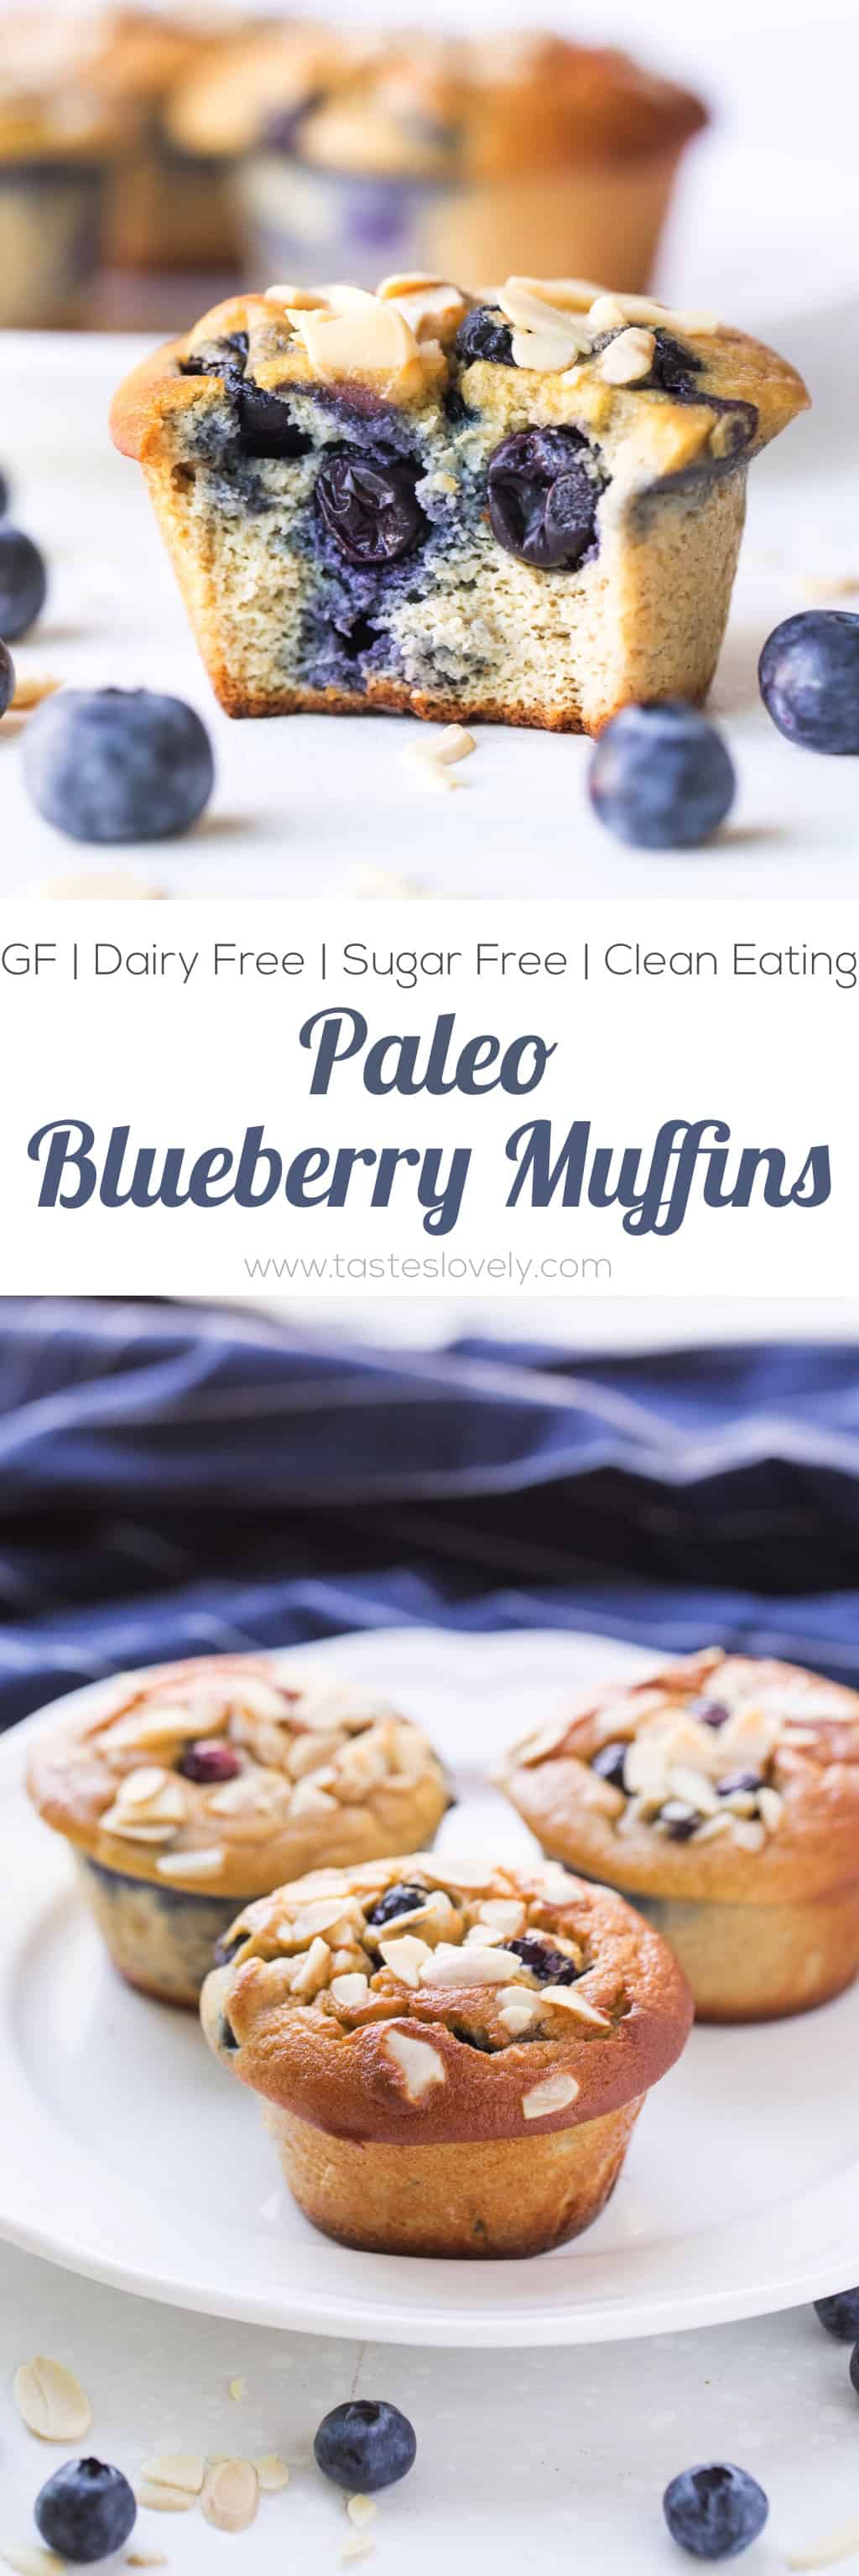 Paleo Blueberry Muffins - made with almond flour and sweetened with banana and coconut sugar. Gluten free, grain free, dairy free, refined sugar free.